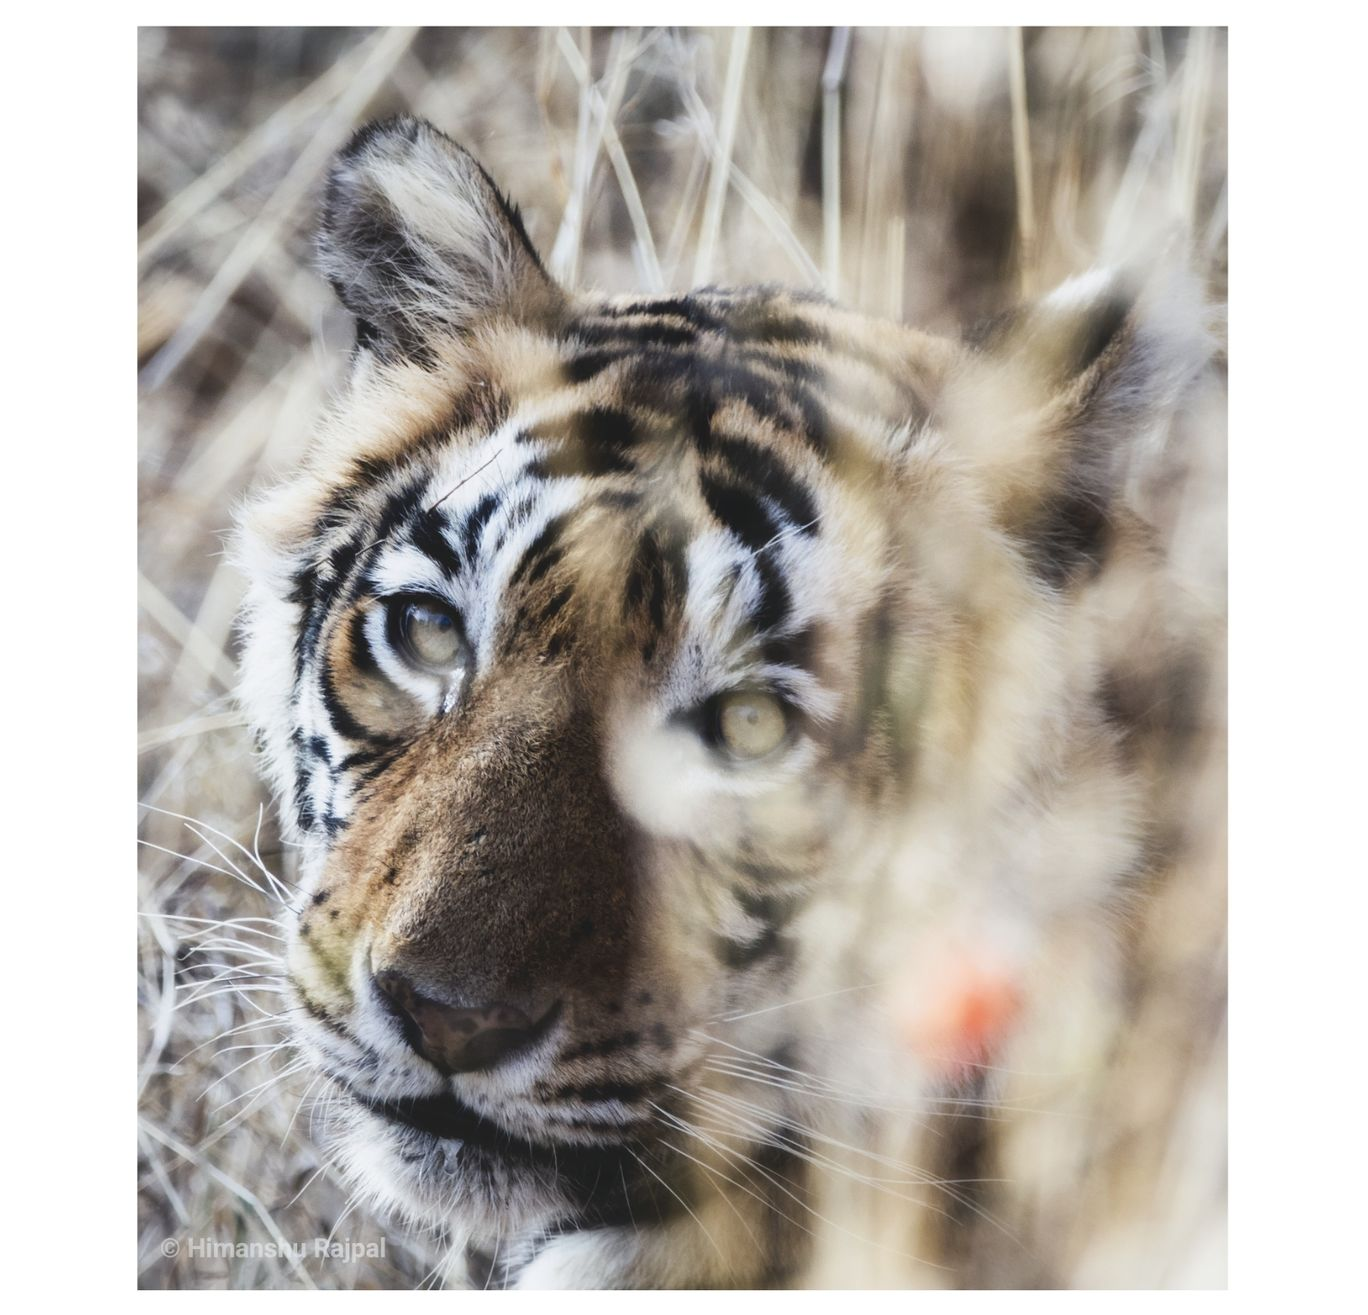 Photo of Ranthambore National Park By Himanshu Rajpal